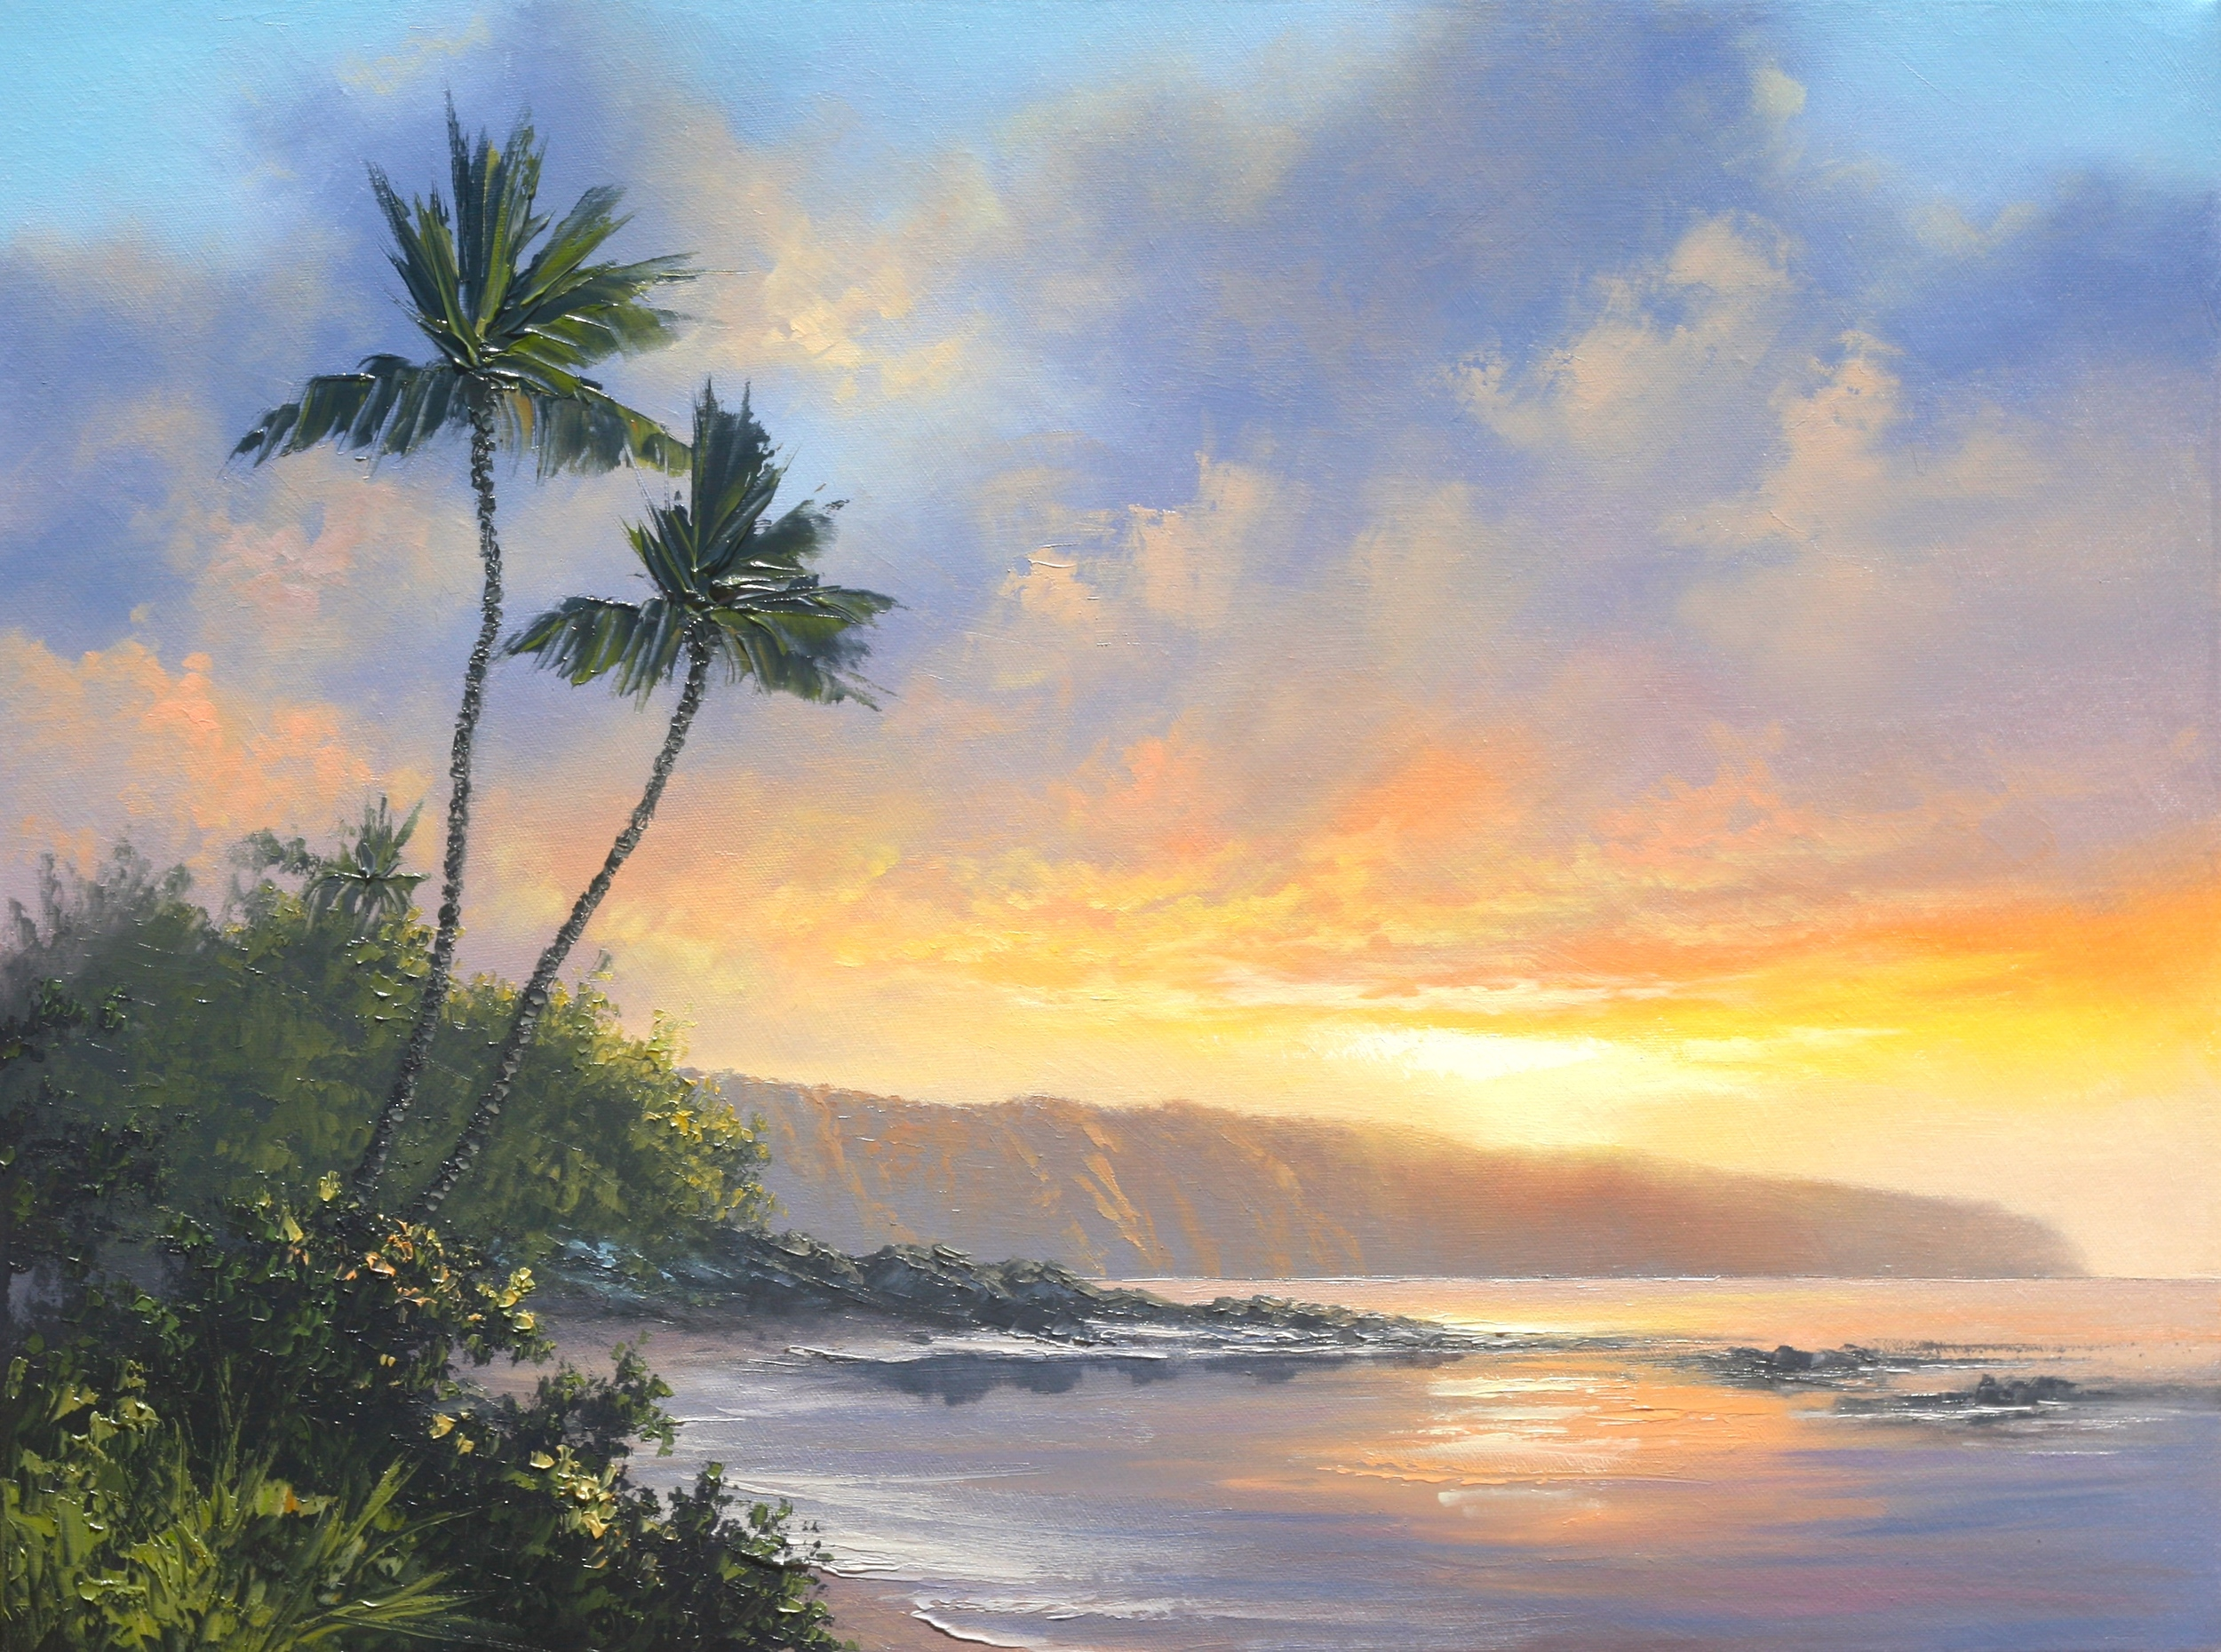 Sunlit Skies, North Shore